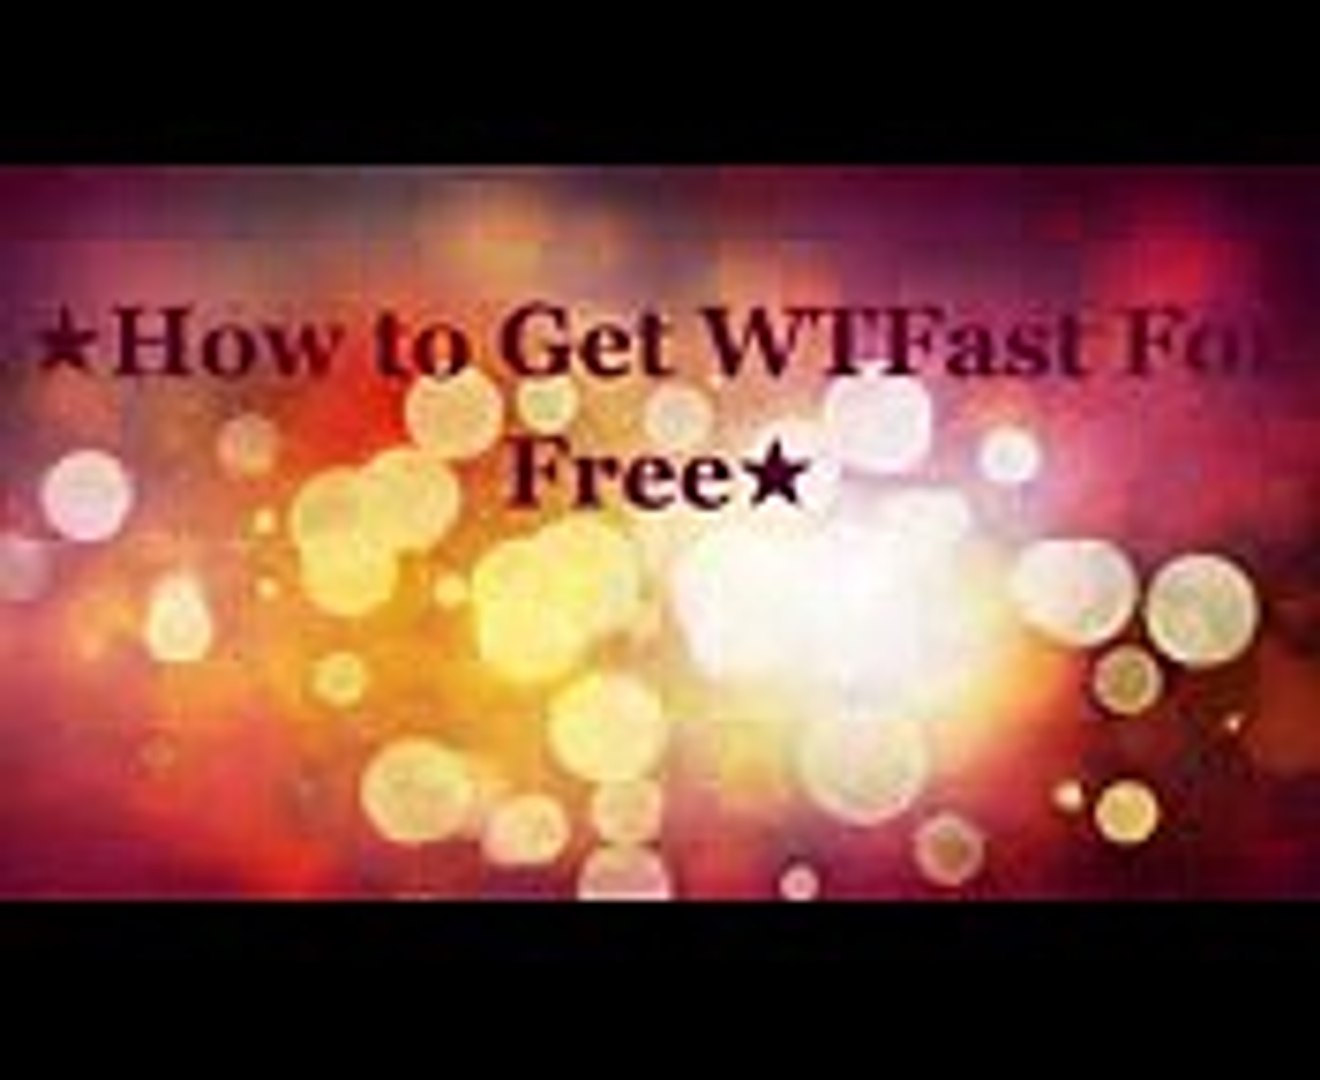 ★WTFAST KEY FOR FREE! [TRIAL RESET 2017] [ALTERNATIVE ACTIVATION KEY]★